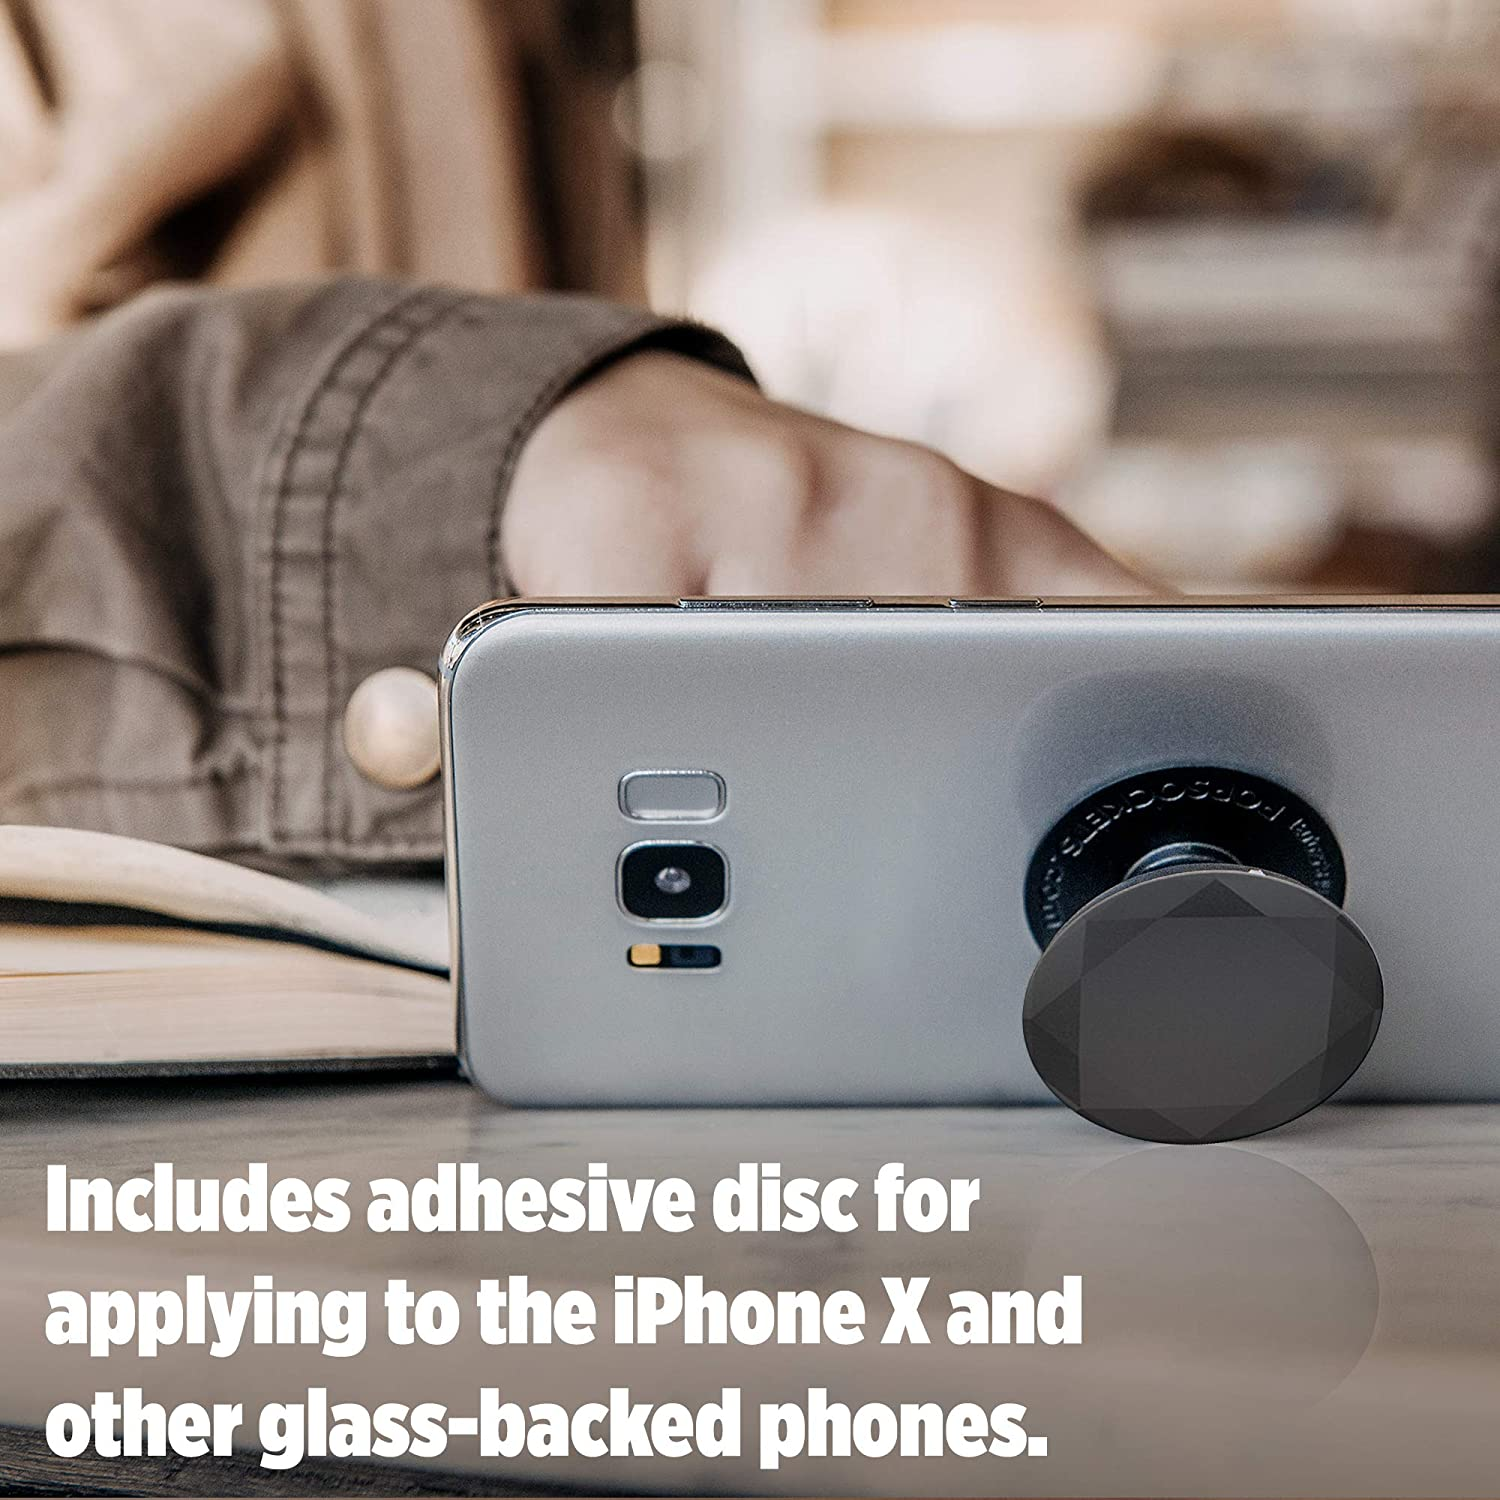 Collapsible Grip /& Stand for Phones and Tablets Black Metallic Diamond PopSockets